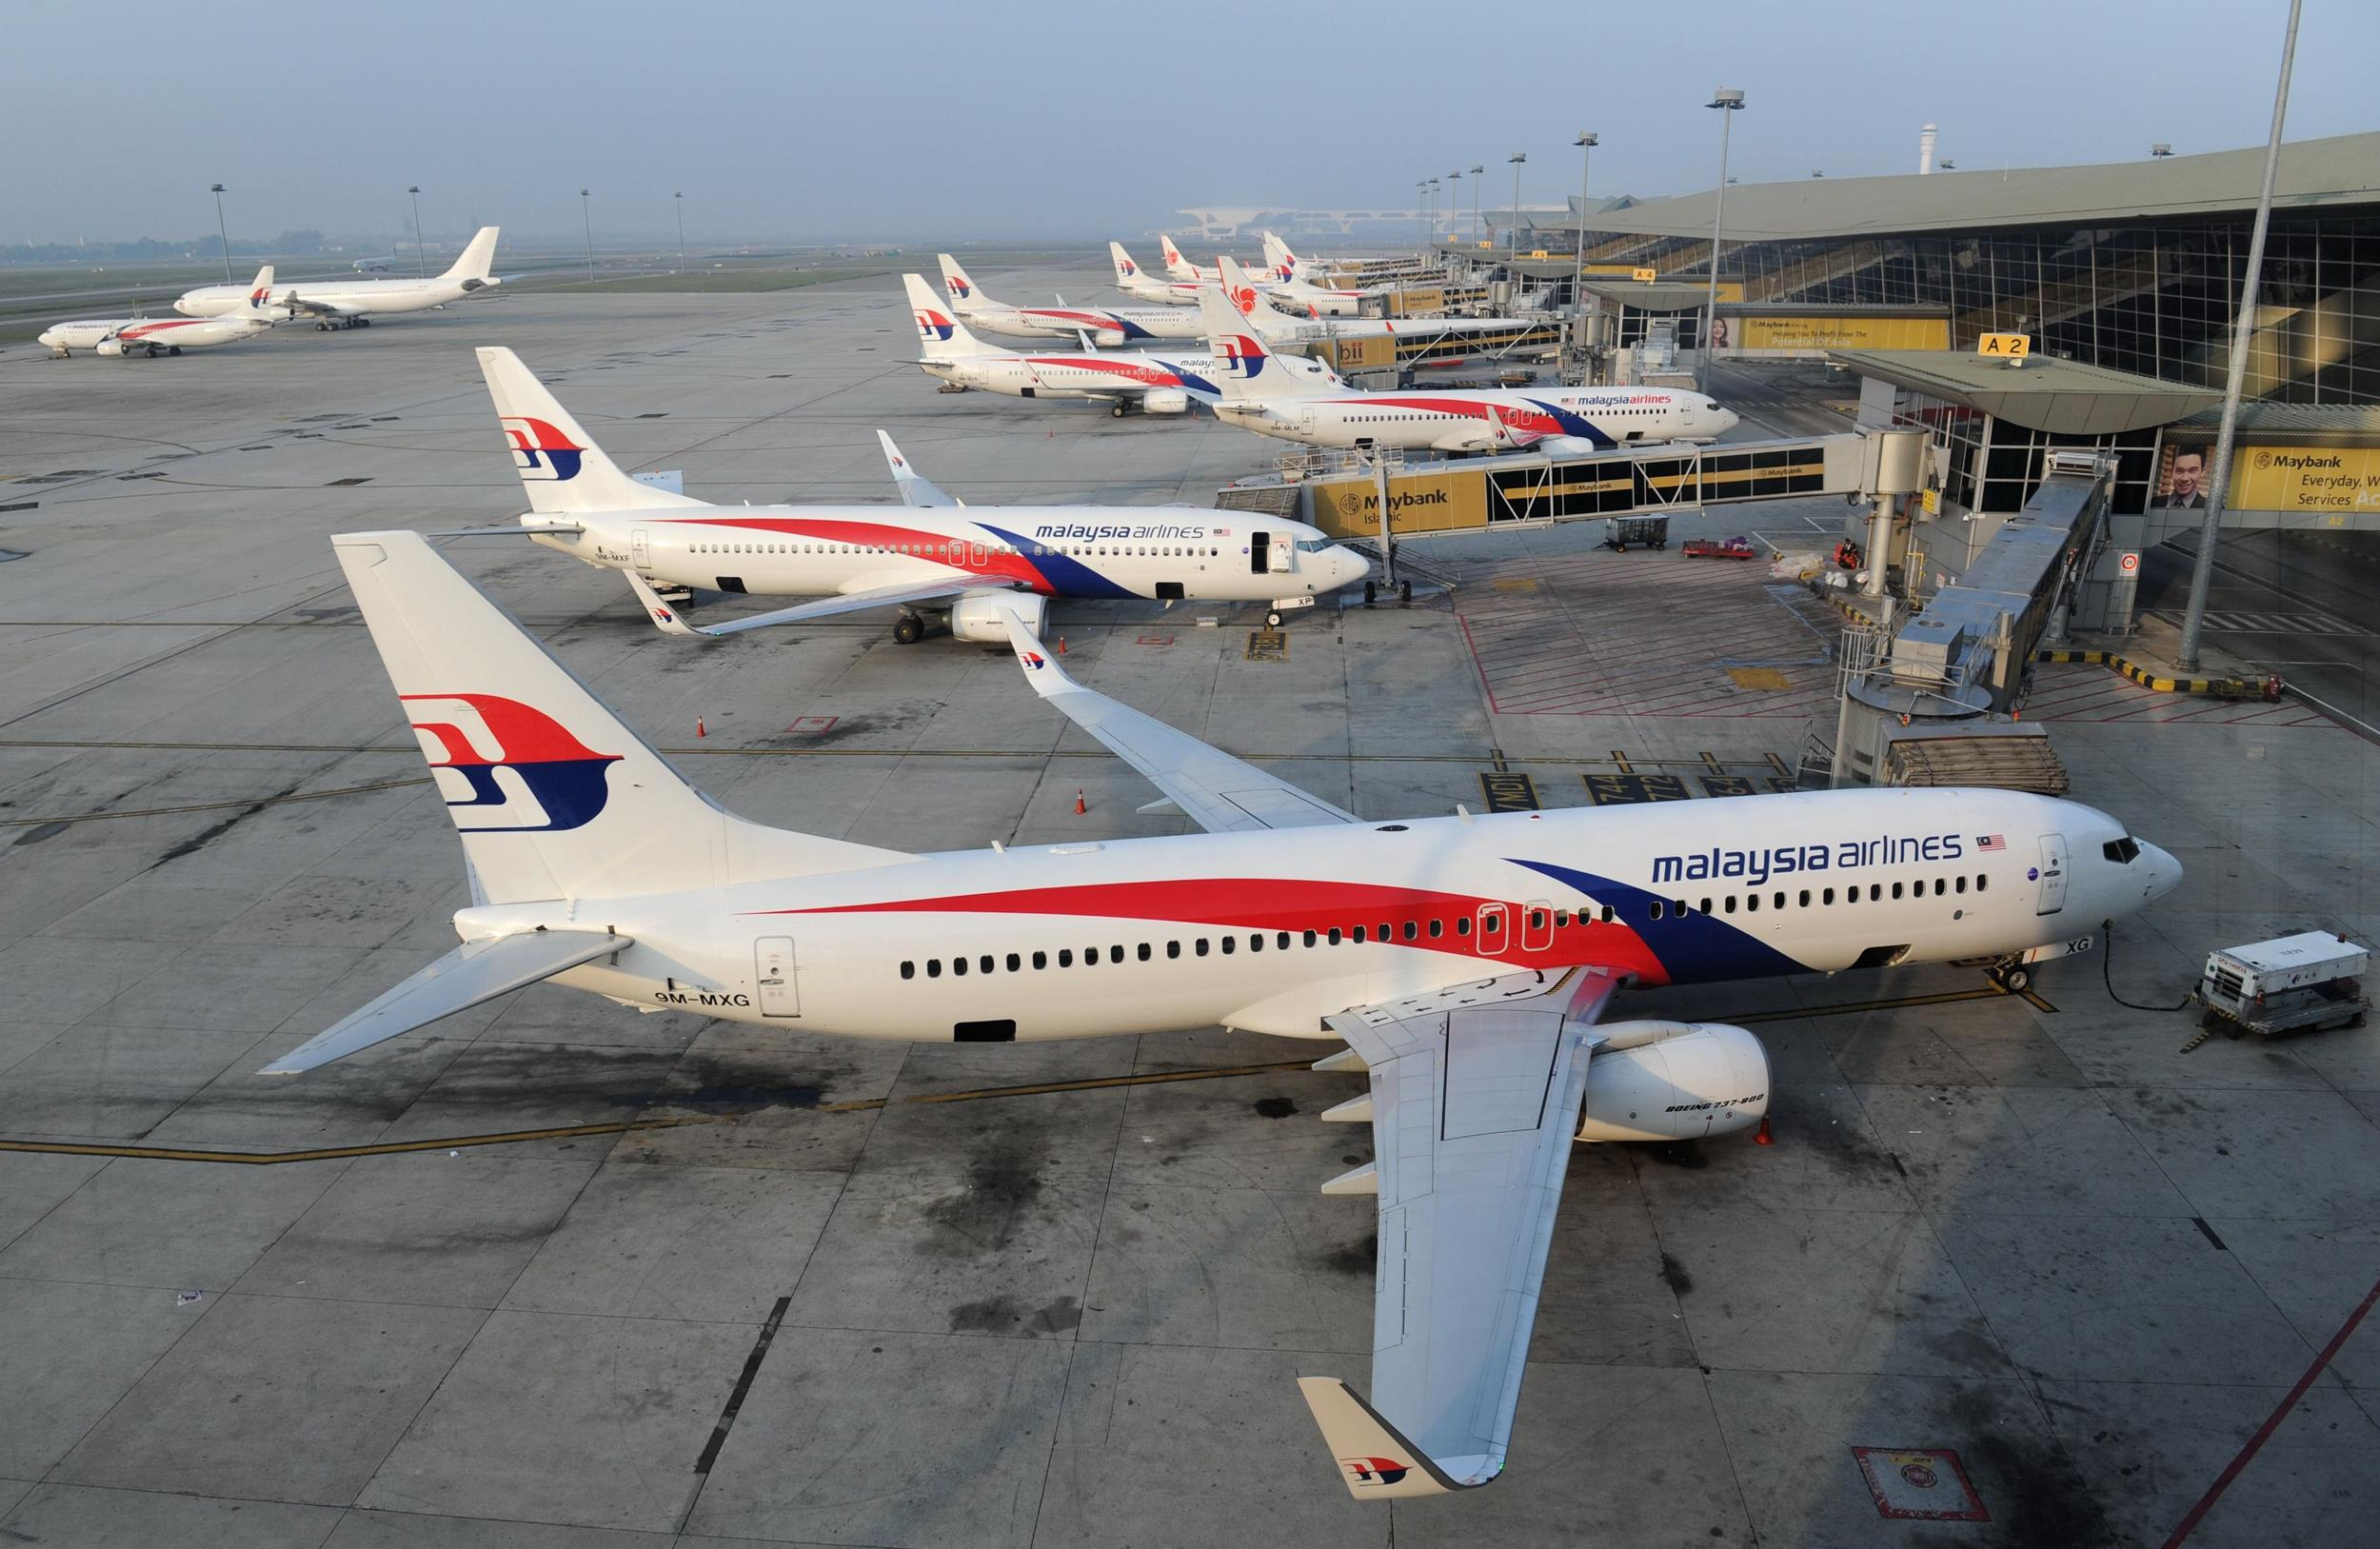 Image: Malaysia Airlines planes parked at the terminal at Kuala Lumpur Intenational Airport (KLIA) in Sepang, on March 30.